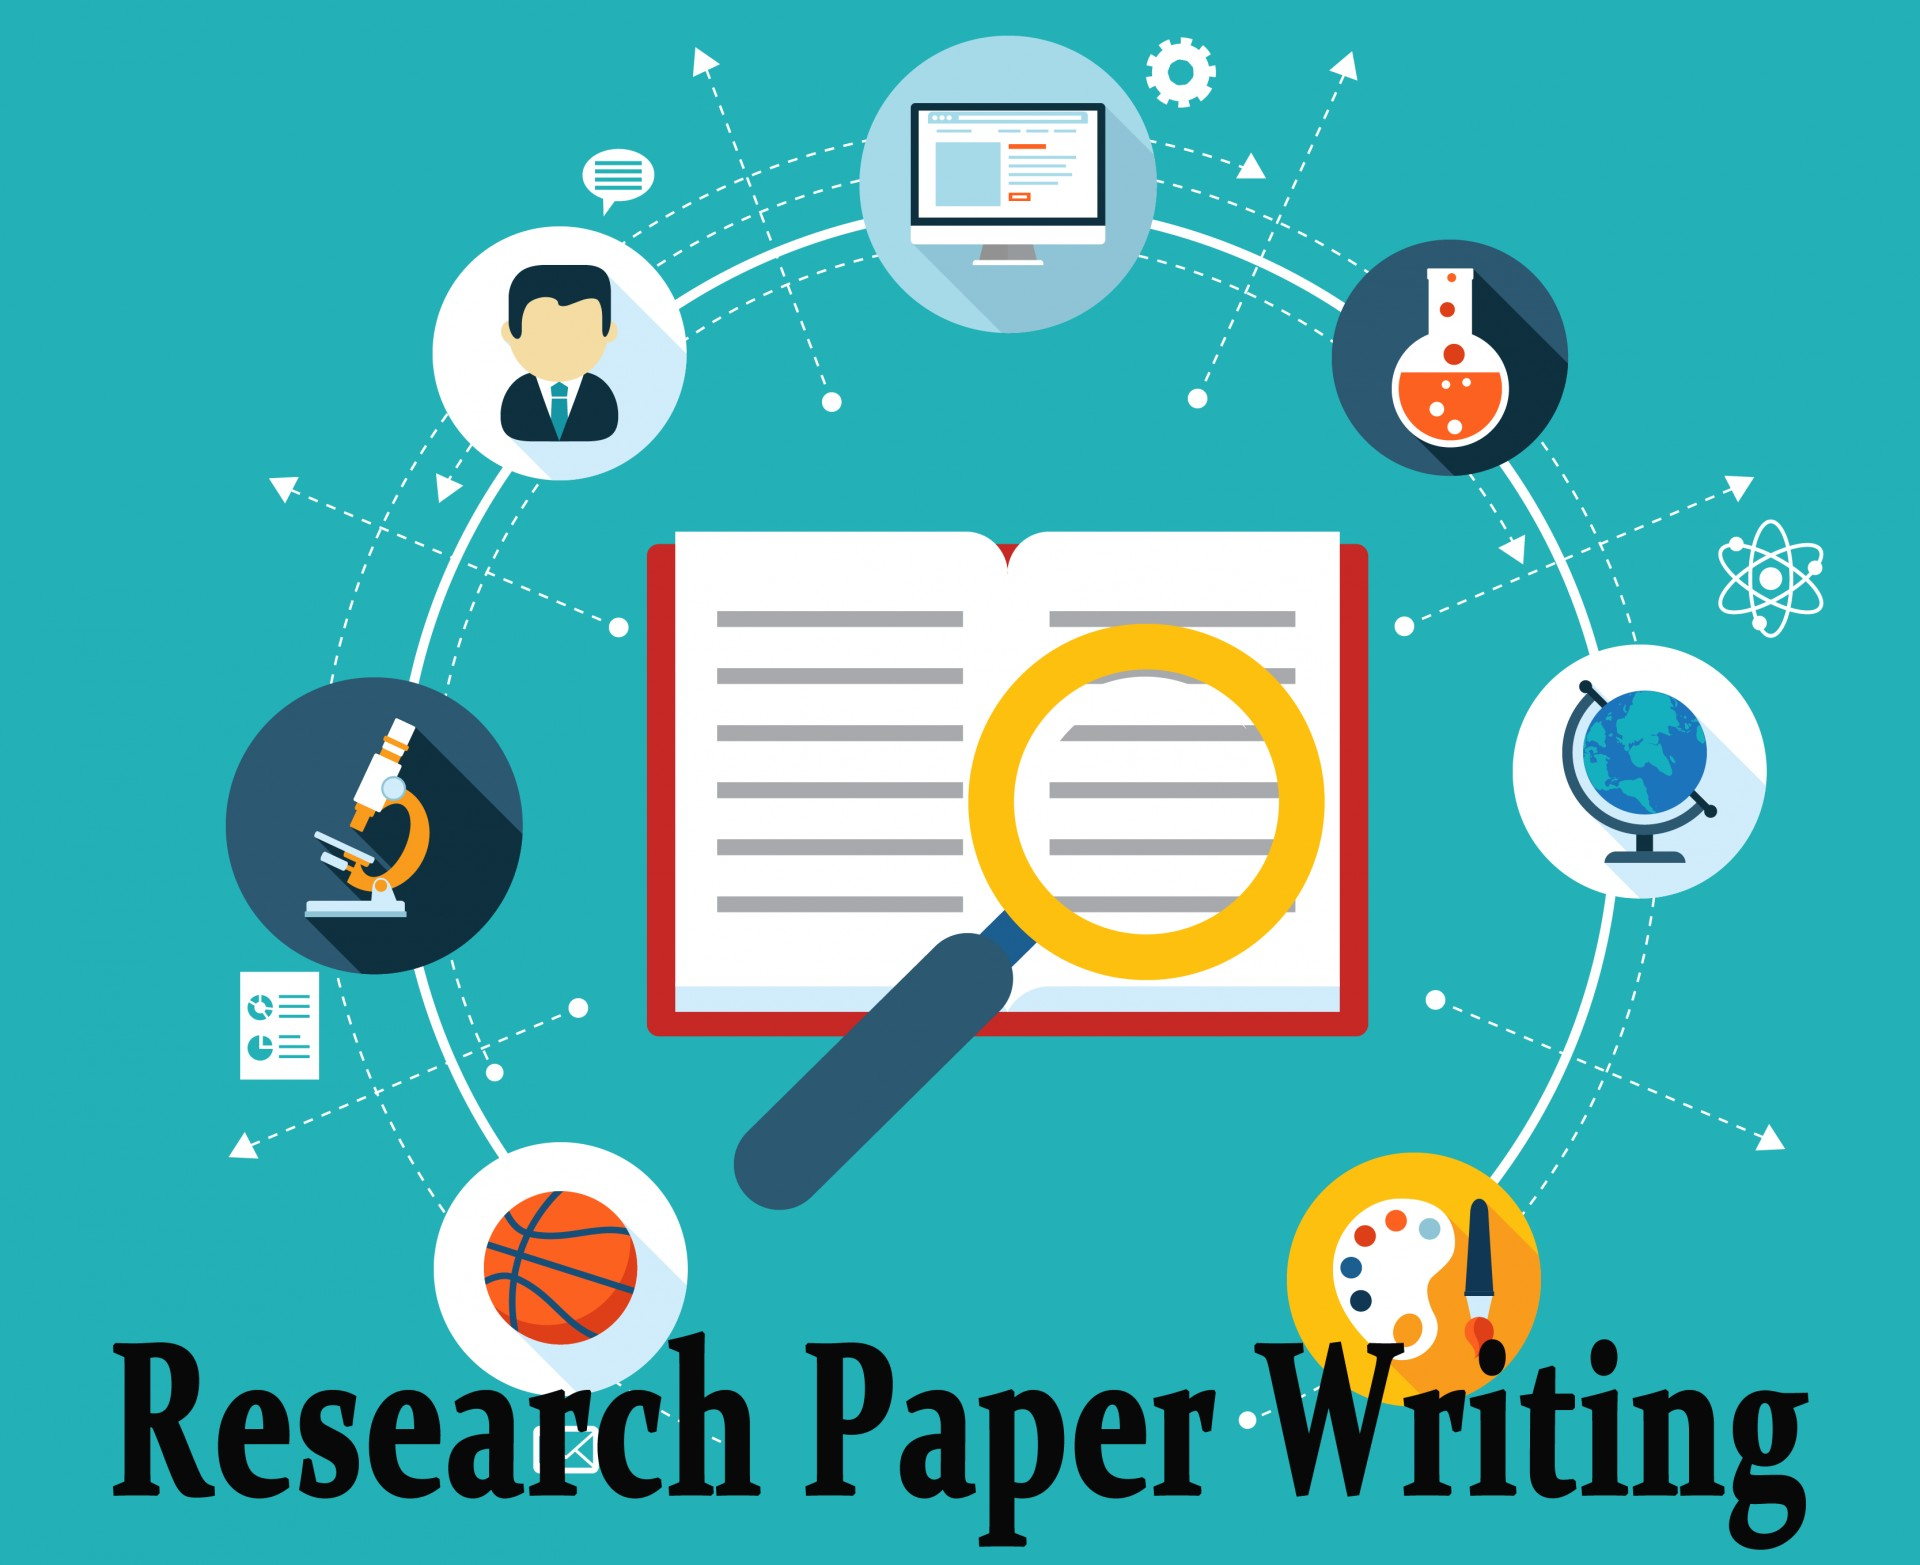 014 Write Researchs 503 Effective Research Writing Frightening Papers How To A Paper Introduction Apa Service In Latex 1920